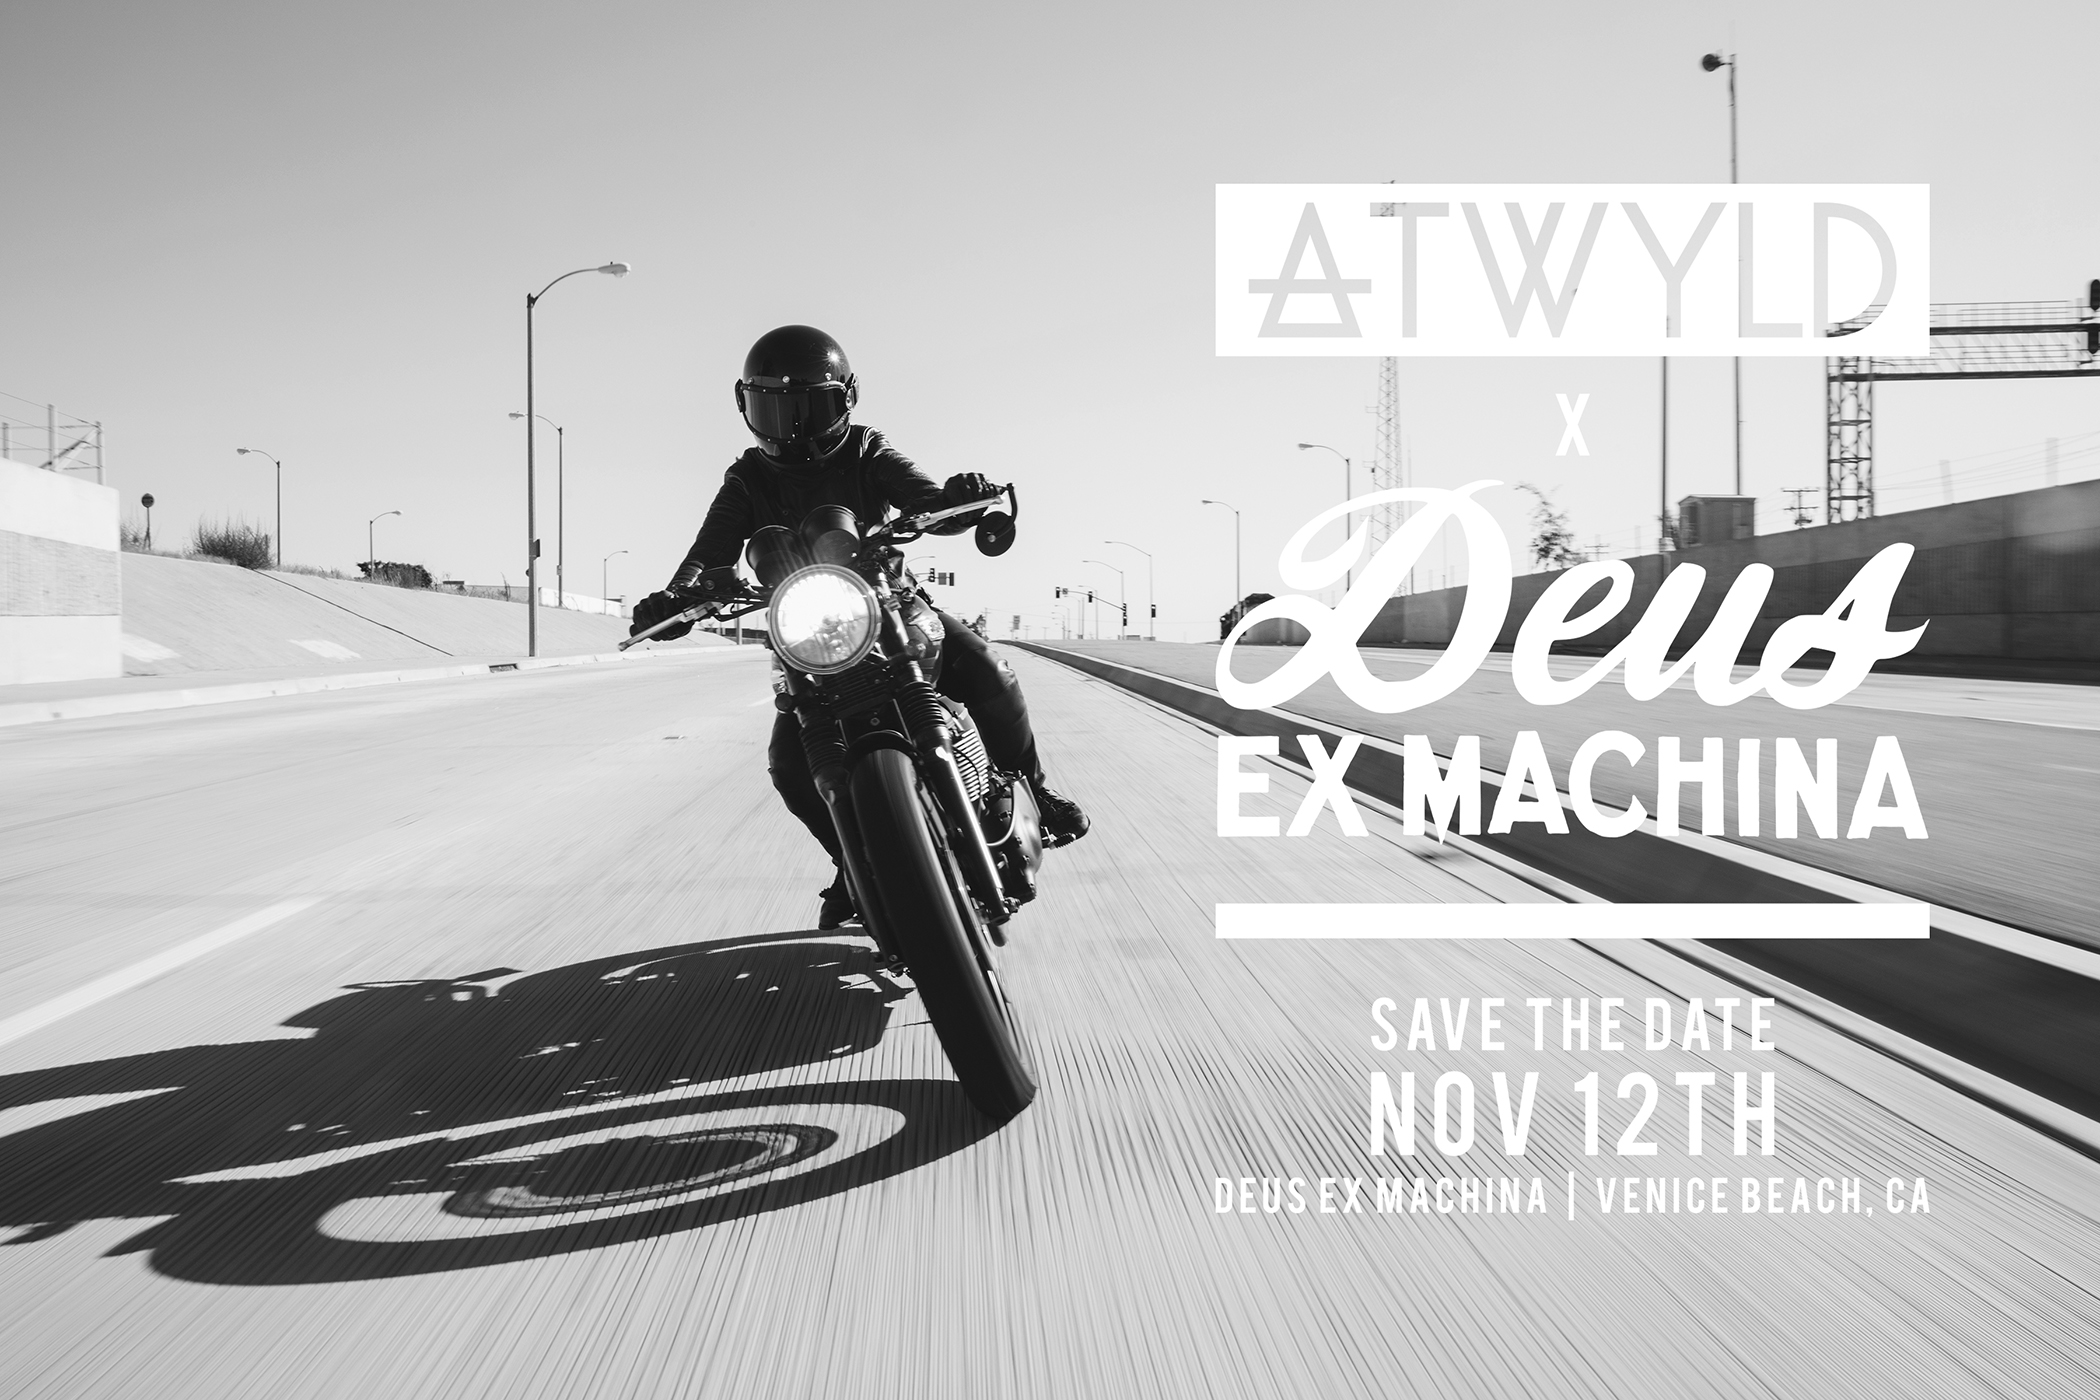 Save the Date! Please Join us on the evening of Saturday November 12th to celebrate the kick-off party for our Collection 1 pop-up shop in store at@deusemporium in Venice! Please RSVP at rsvp@atwyld.com